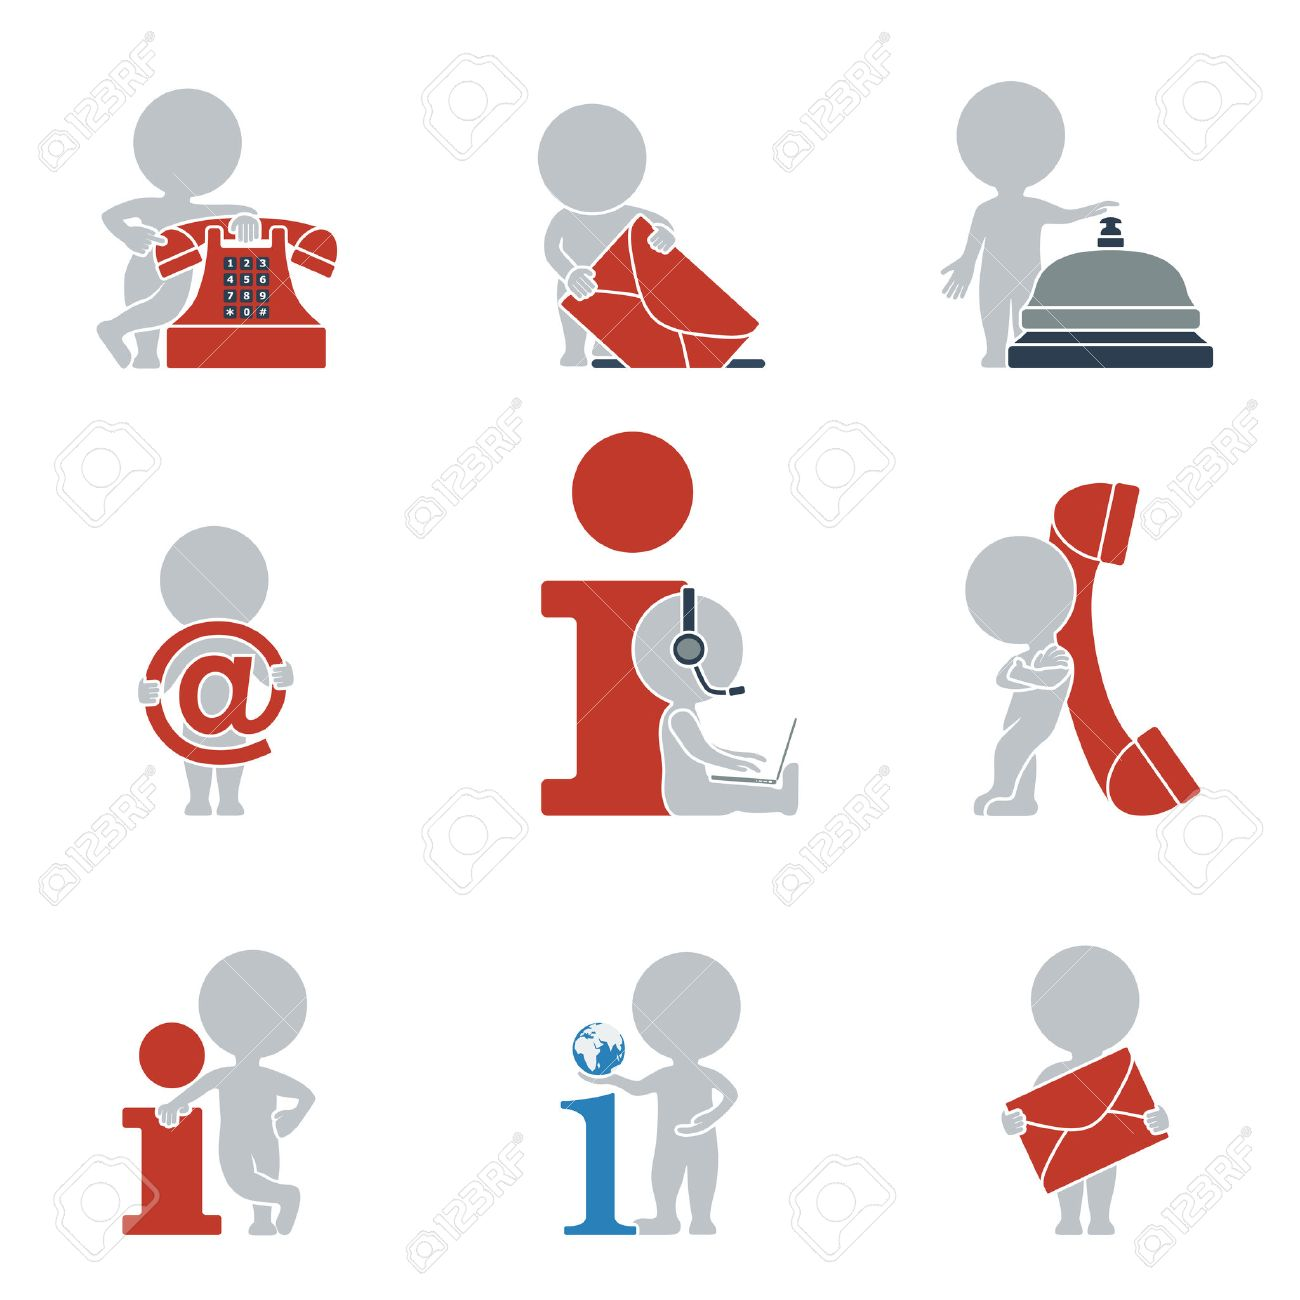 Collection of flat icons with people on contacts and information. Vector illustration. Stock Vector - 24644435